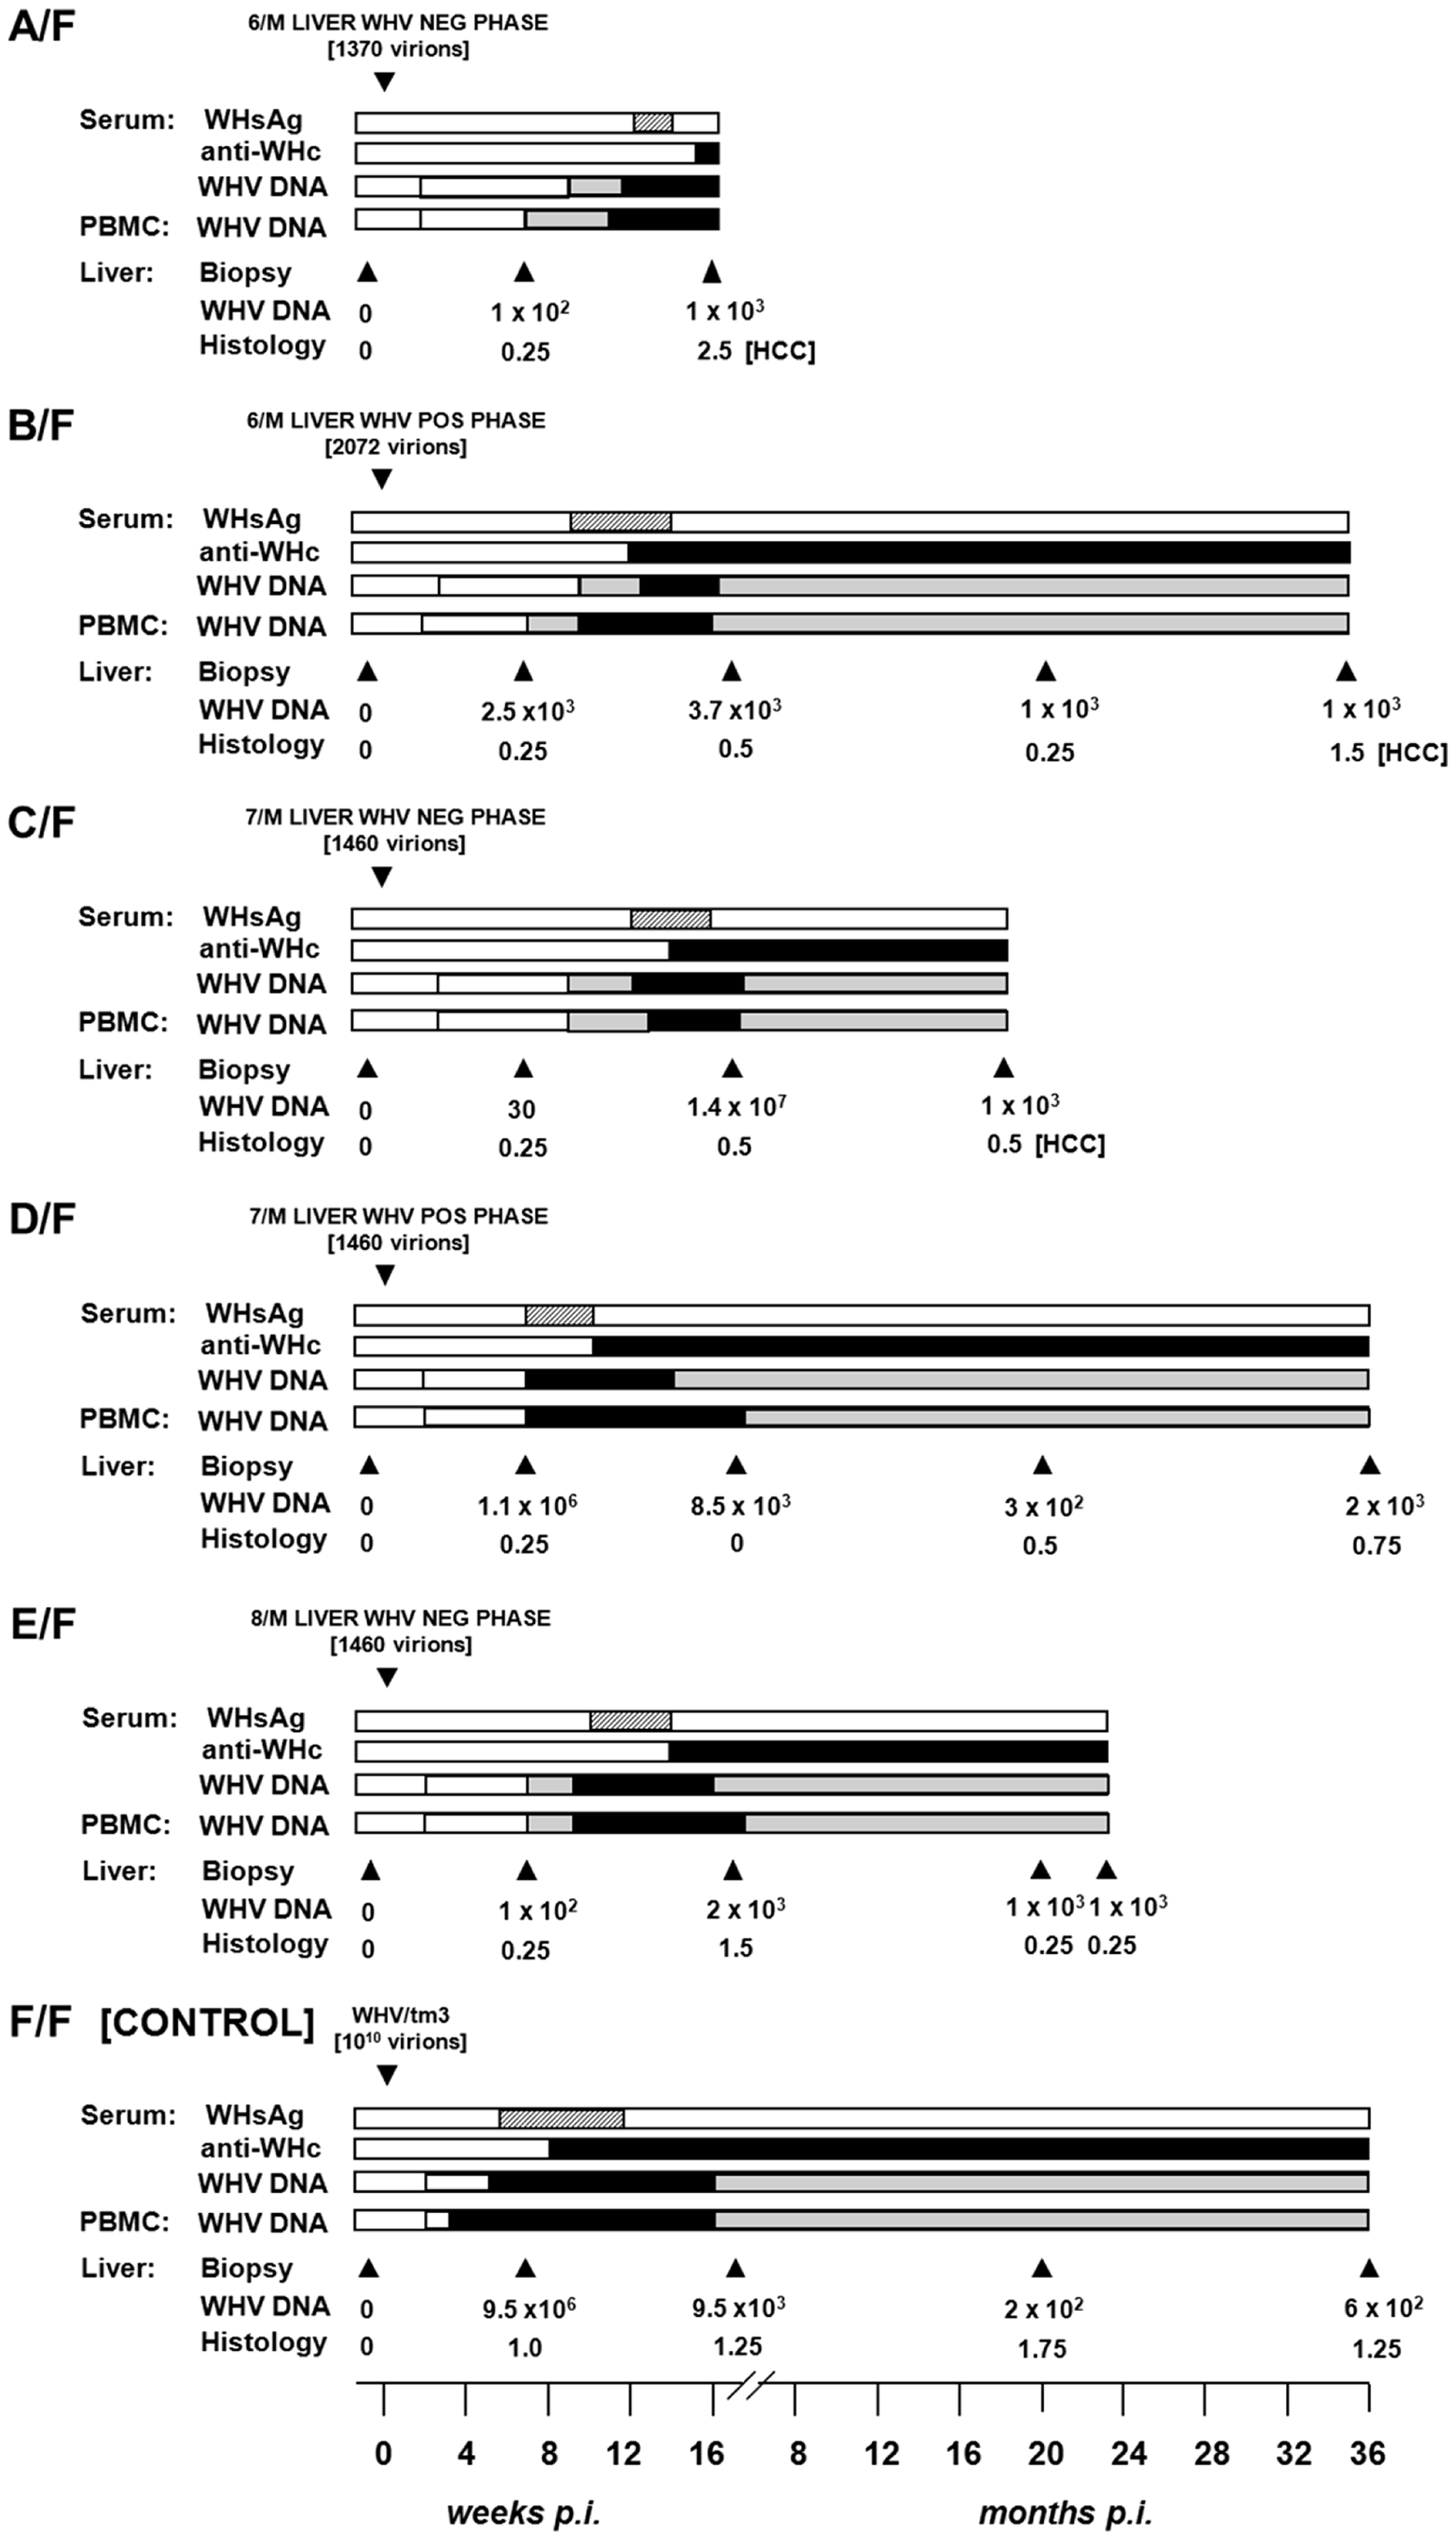 Serological profiles of WHV infection, detection of WHV DNA in sequential serum, PBMC and liver tissue samples, histological degree of hepatitis, and detection of HCC in initially healthy, WHV-naïve woodchucks inoculated with circulating WHV derived from the liver virus-negative and the liver virus-positive phases of POI.